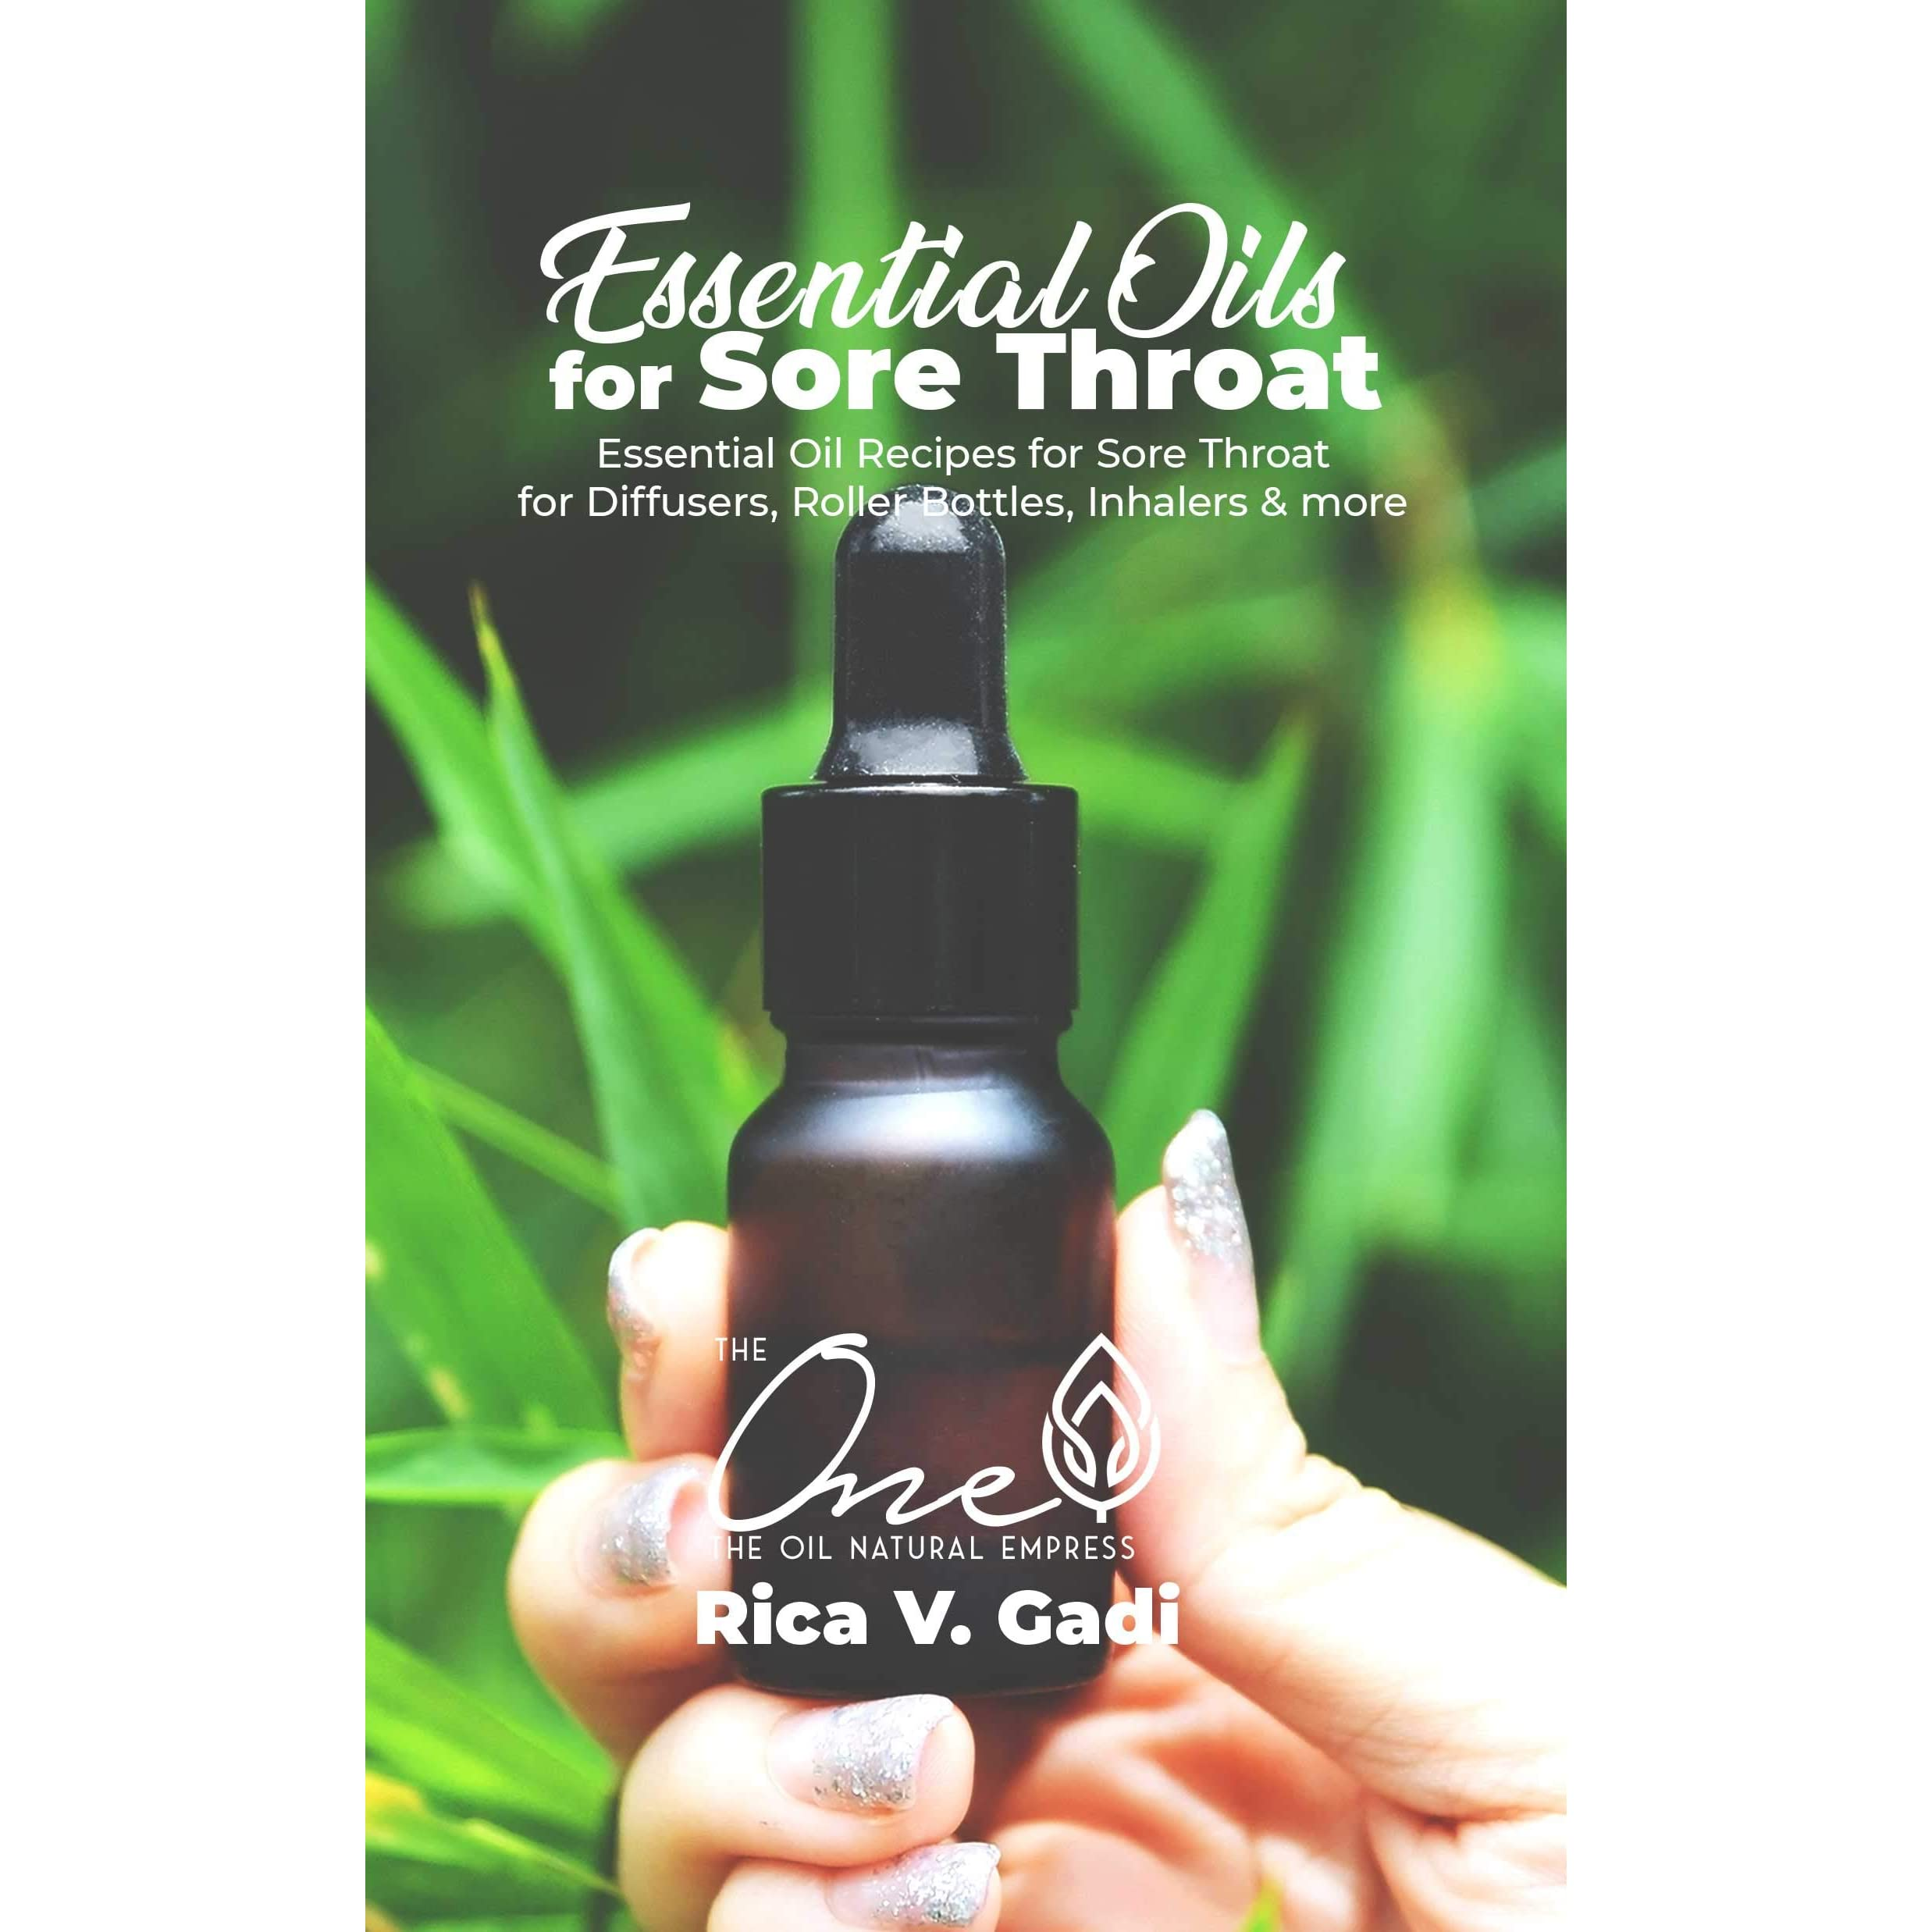 Essential Oils For Sore Throat Essential Oil Recipes For Sore Throat For Diffusers Roller Bottles Inhalers More By Rica V Gadi